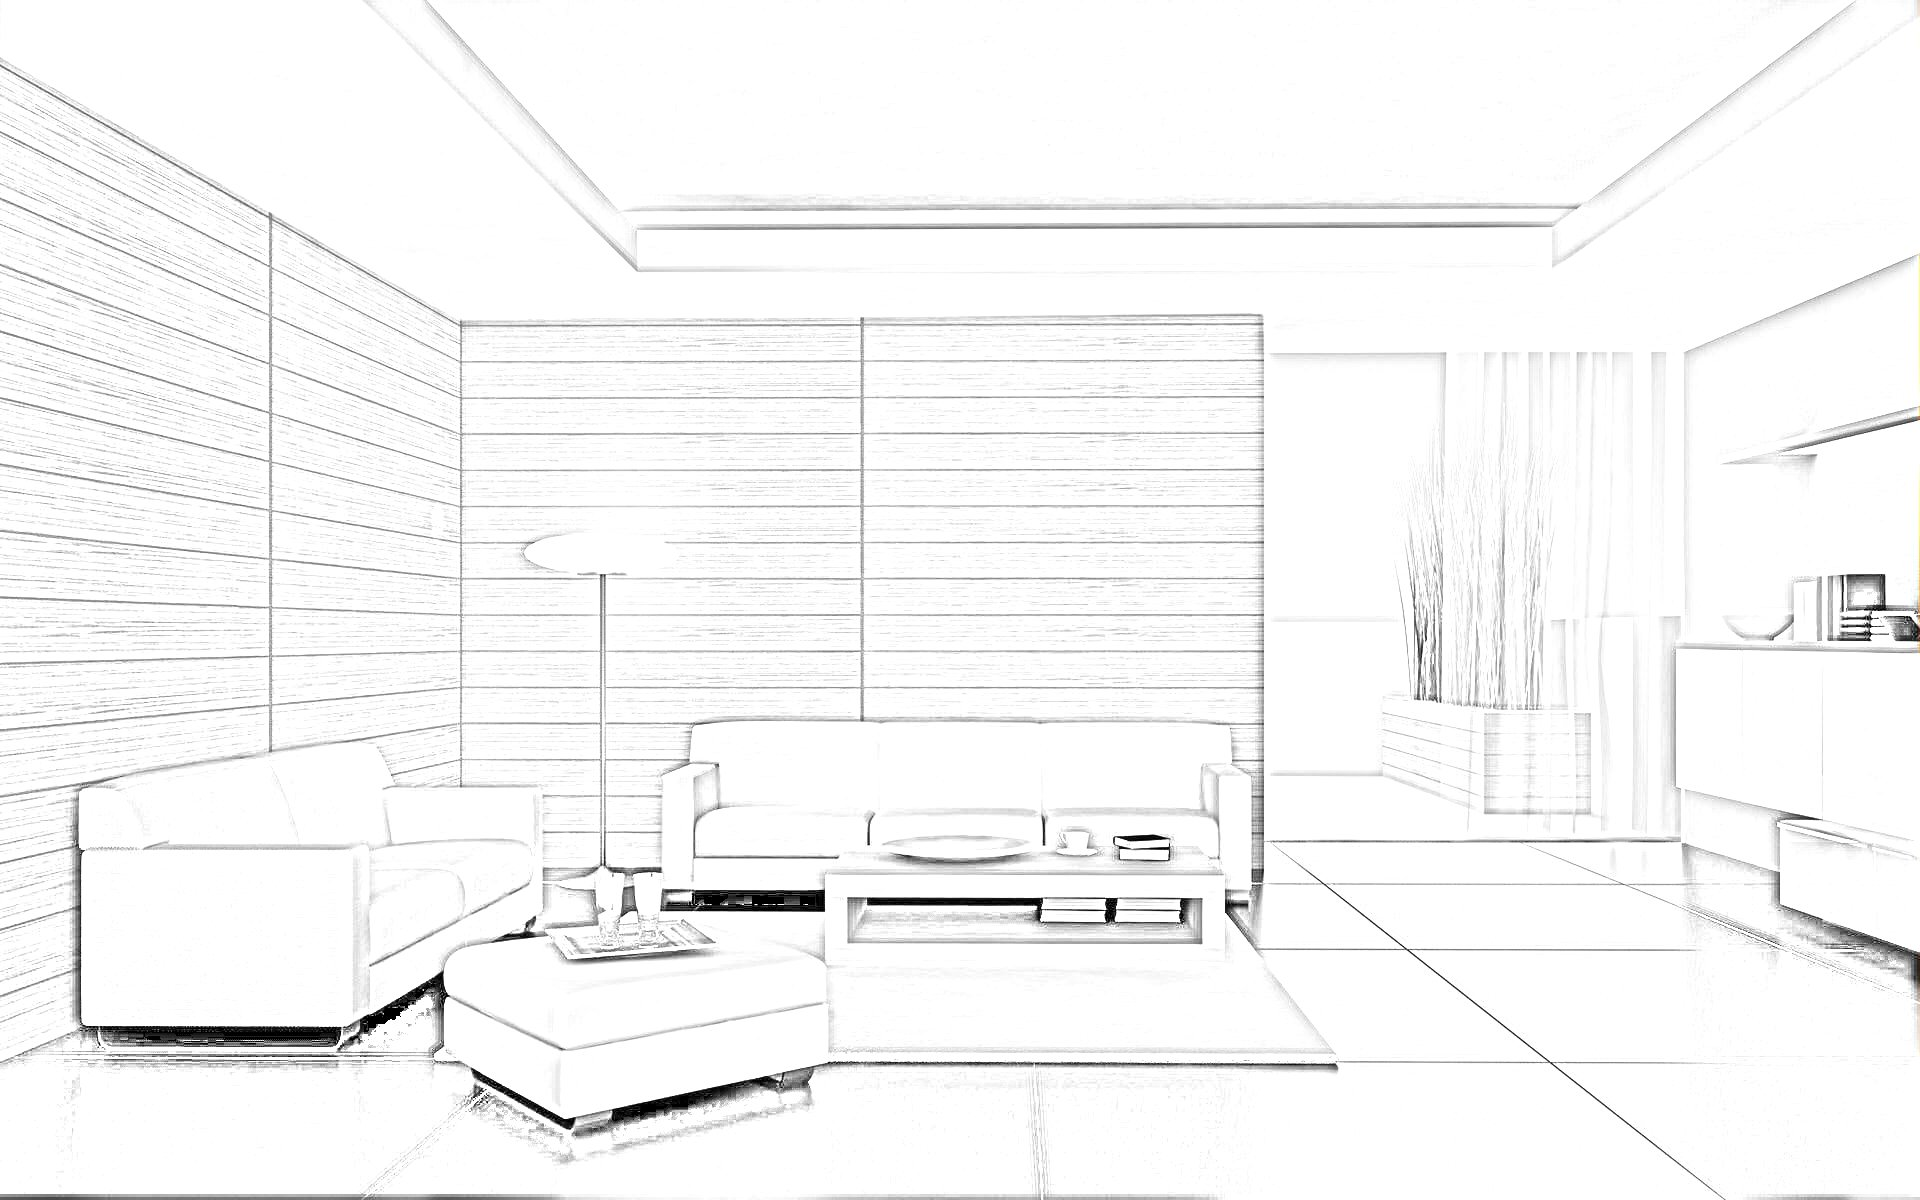 Home interior decoration sketches for kids 15 jpg